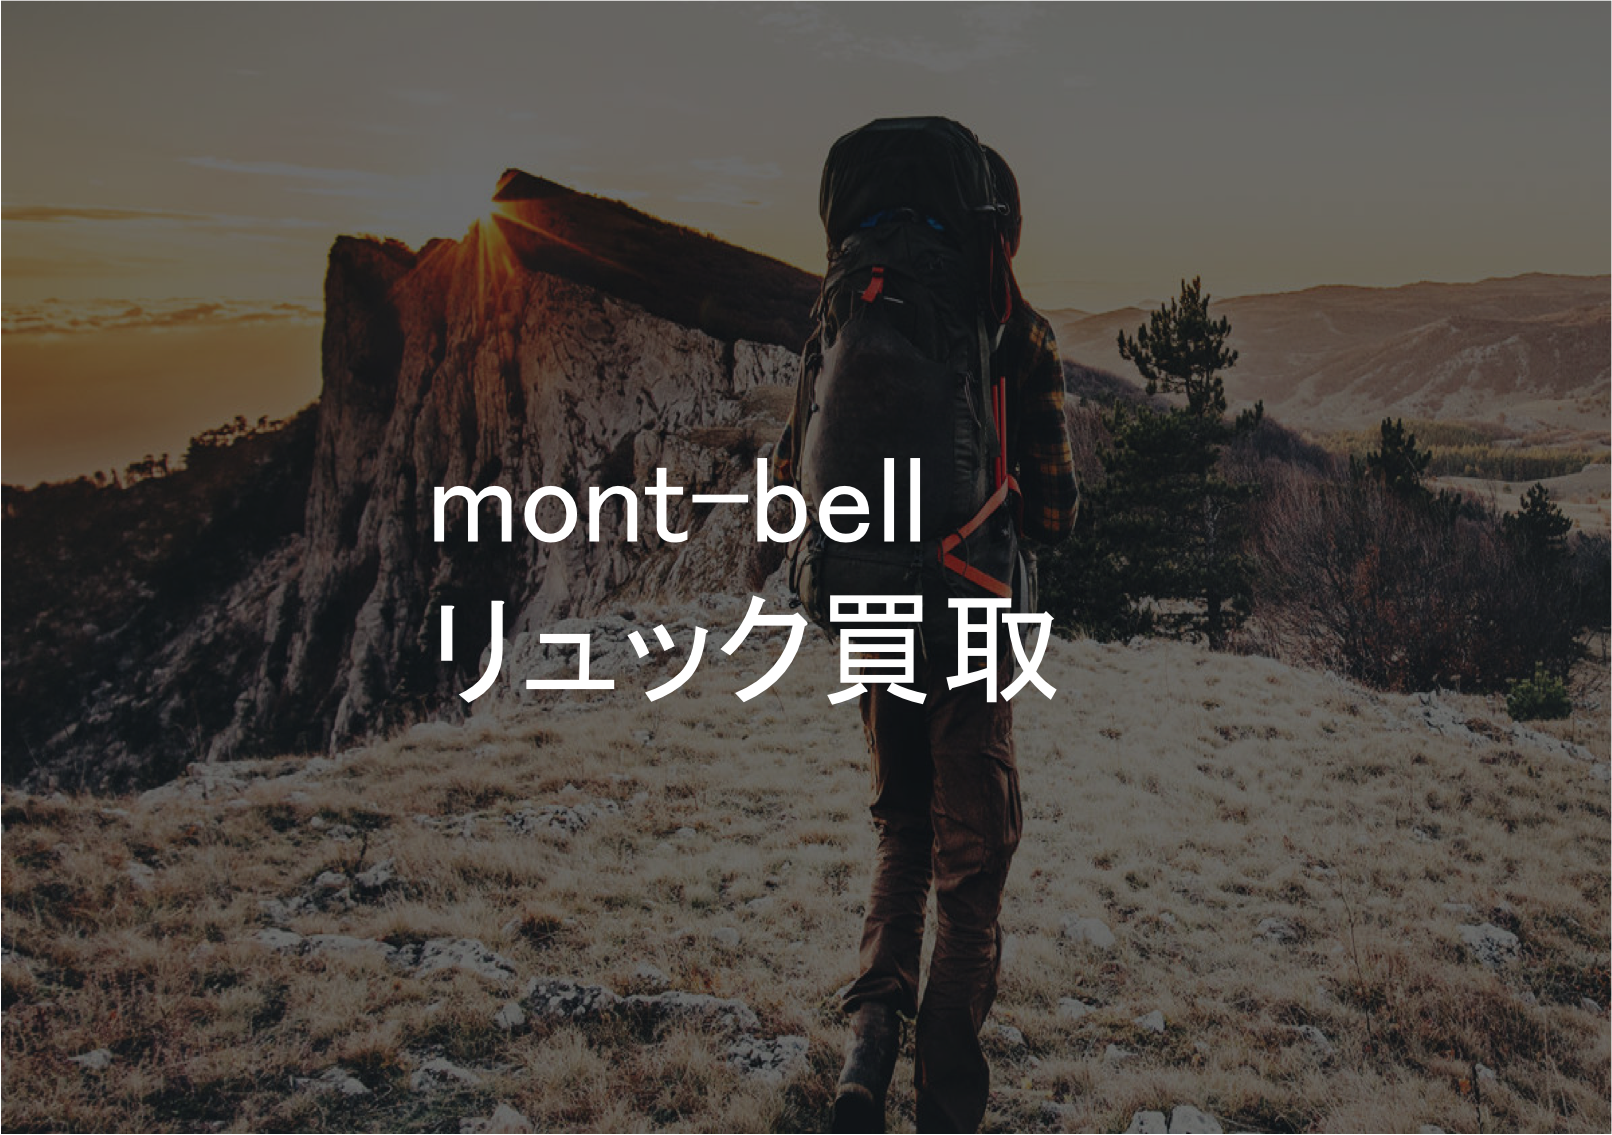 mont-bell(モンベル)リュックサック/バックパック買取なら!